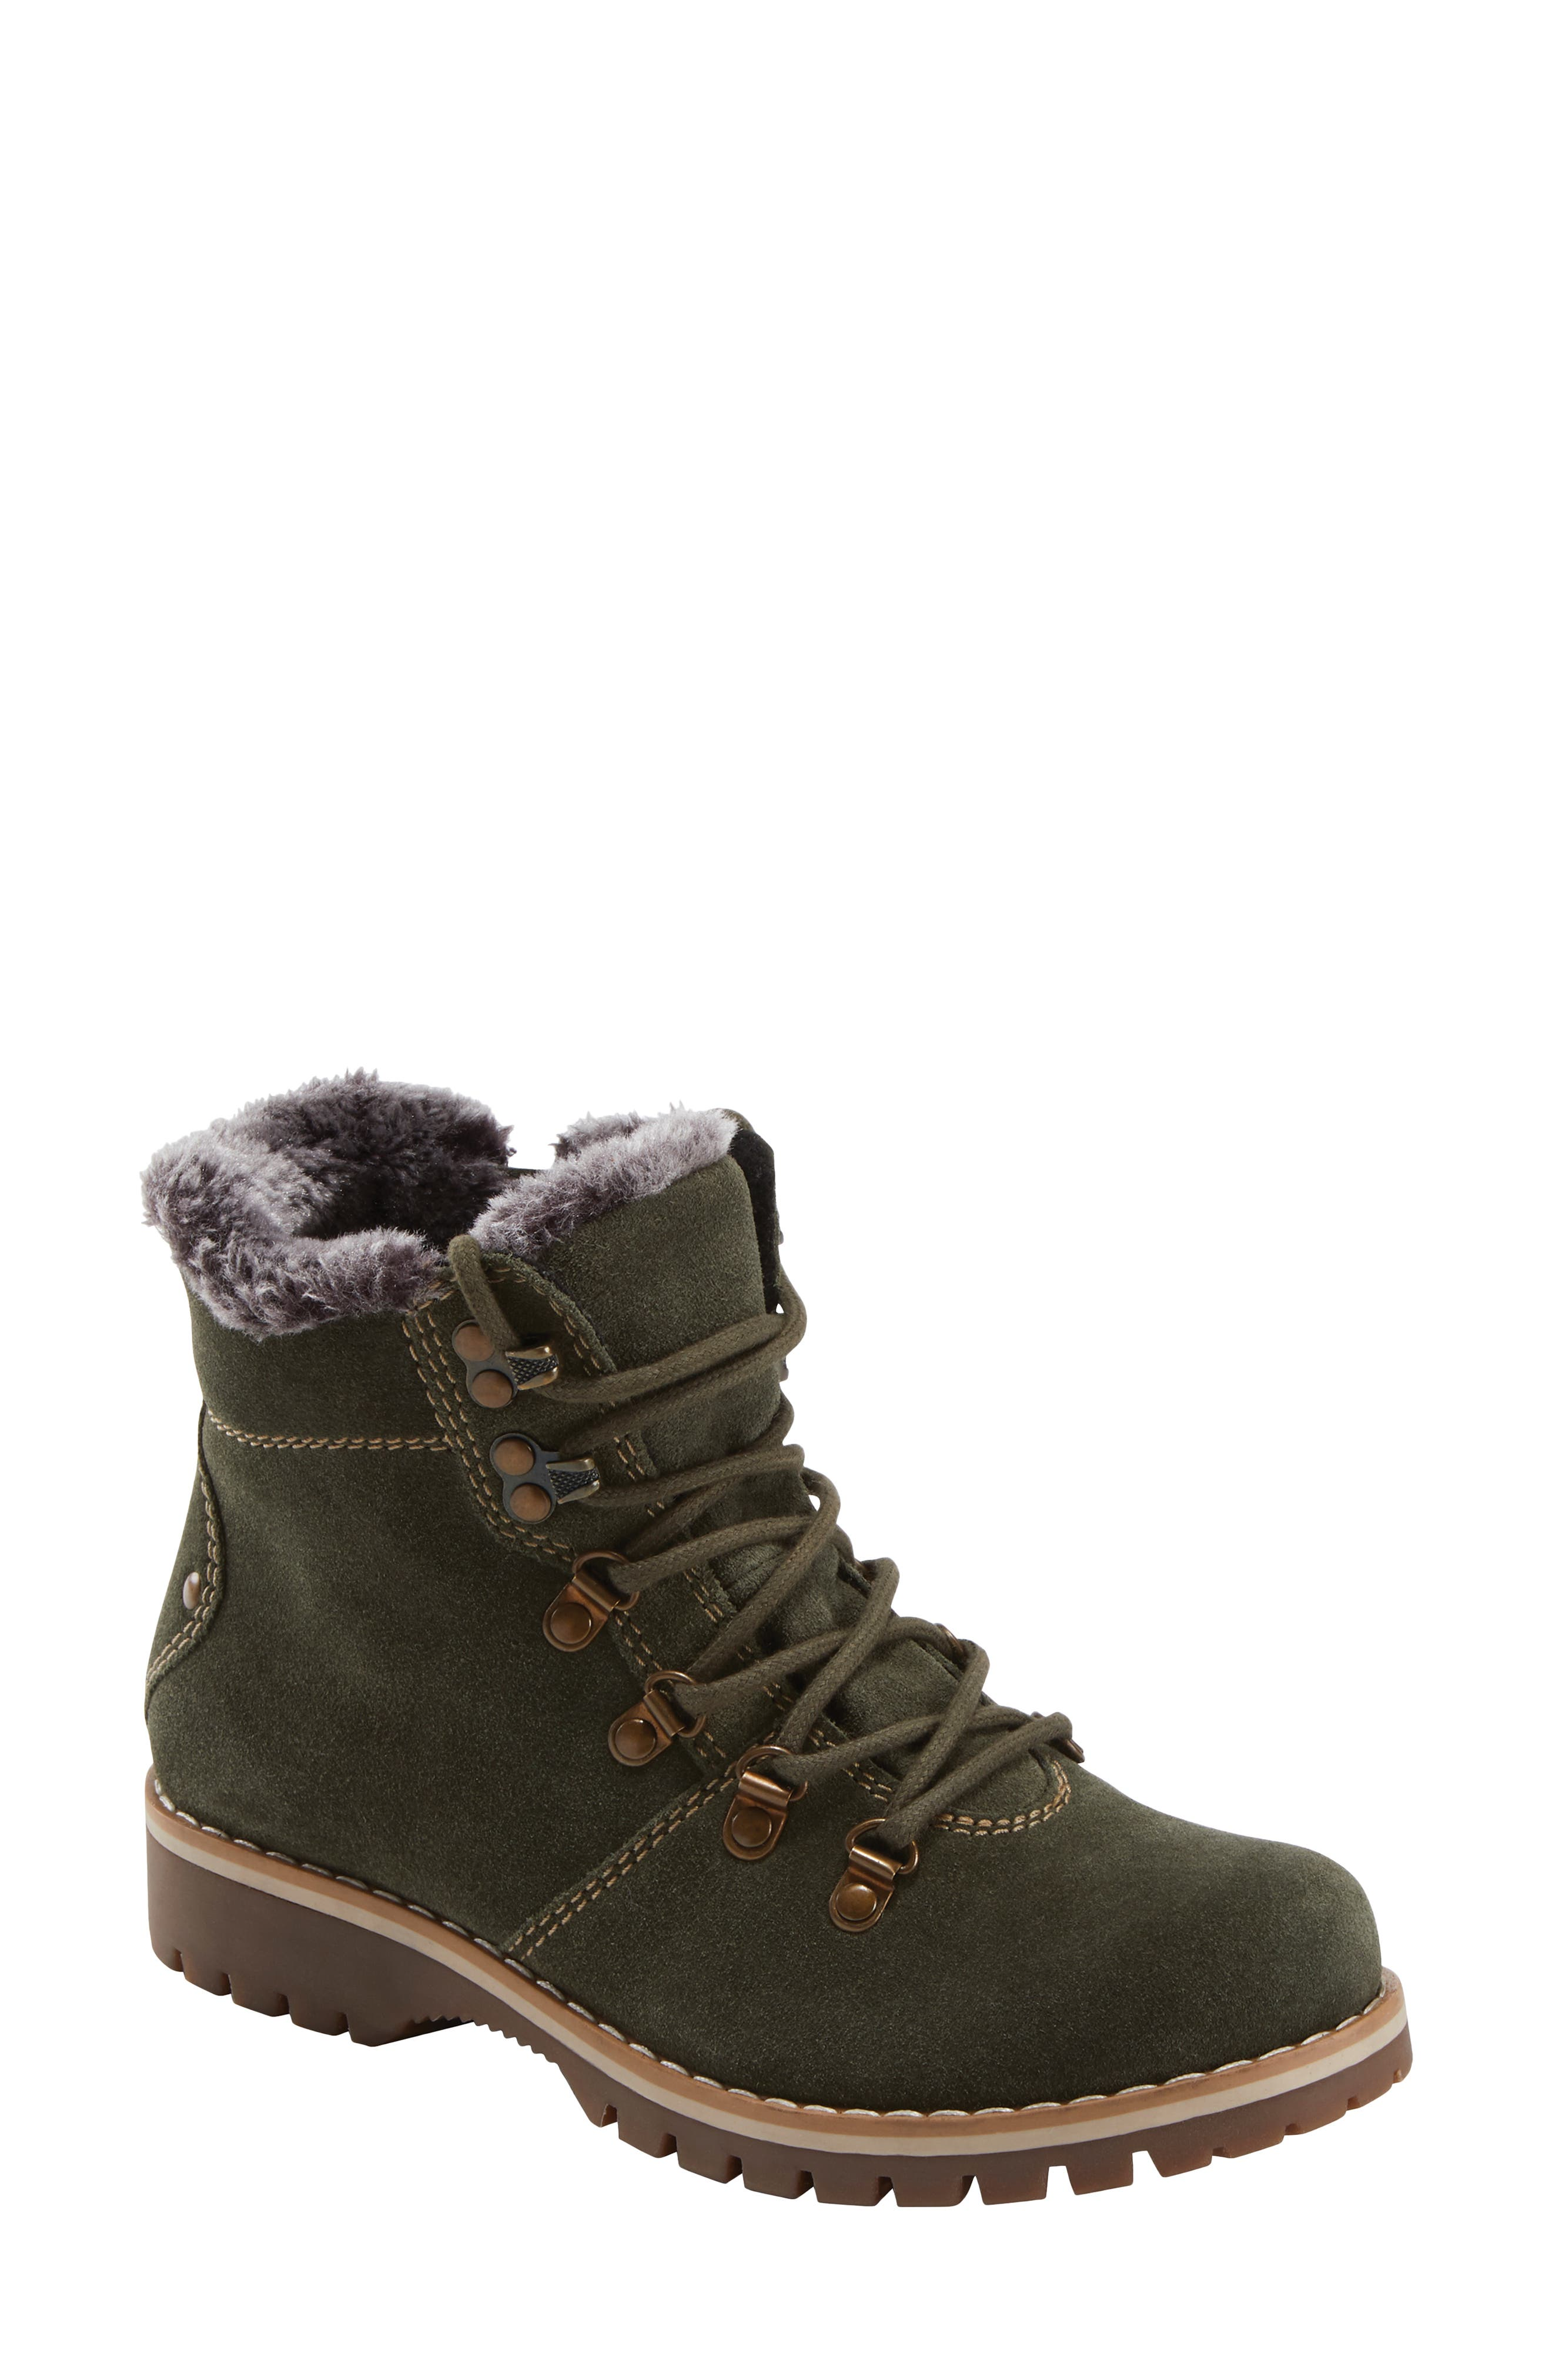 Plush faux fur lines the collar for enhanced comfort in this water-repellent boot featuring the Powerpath footbed with support that reinforces good posture. Style Name: Earth Ranger Acadia Water Repellent Hiking Boot (Women). Style Number: 6122026. Available in stores.